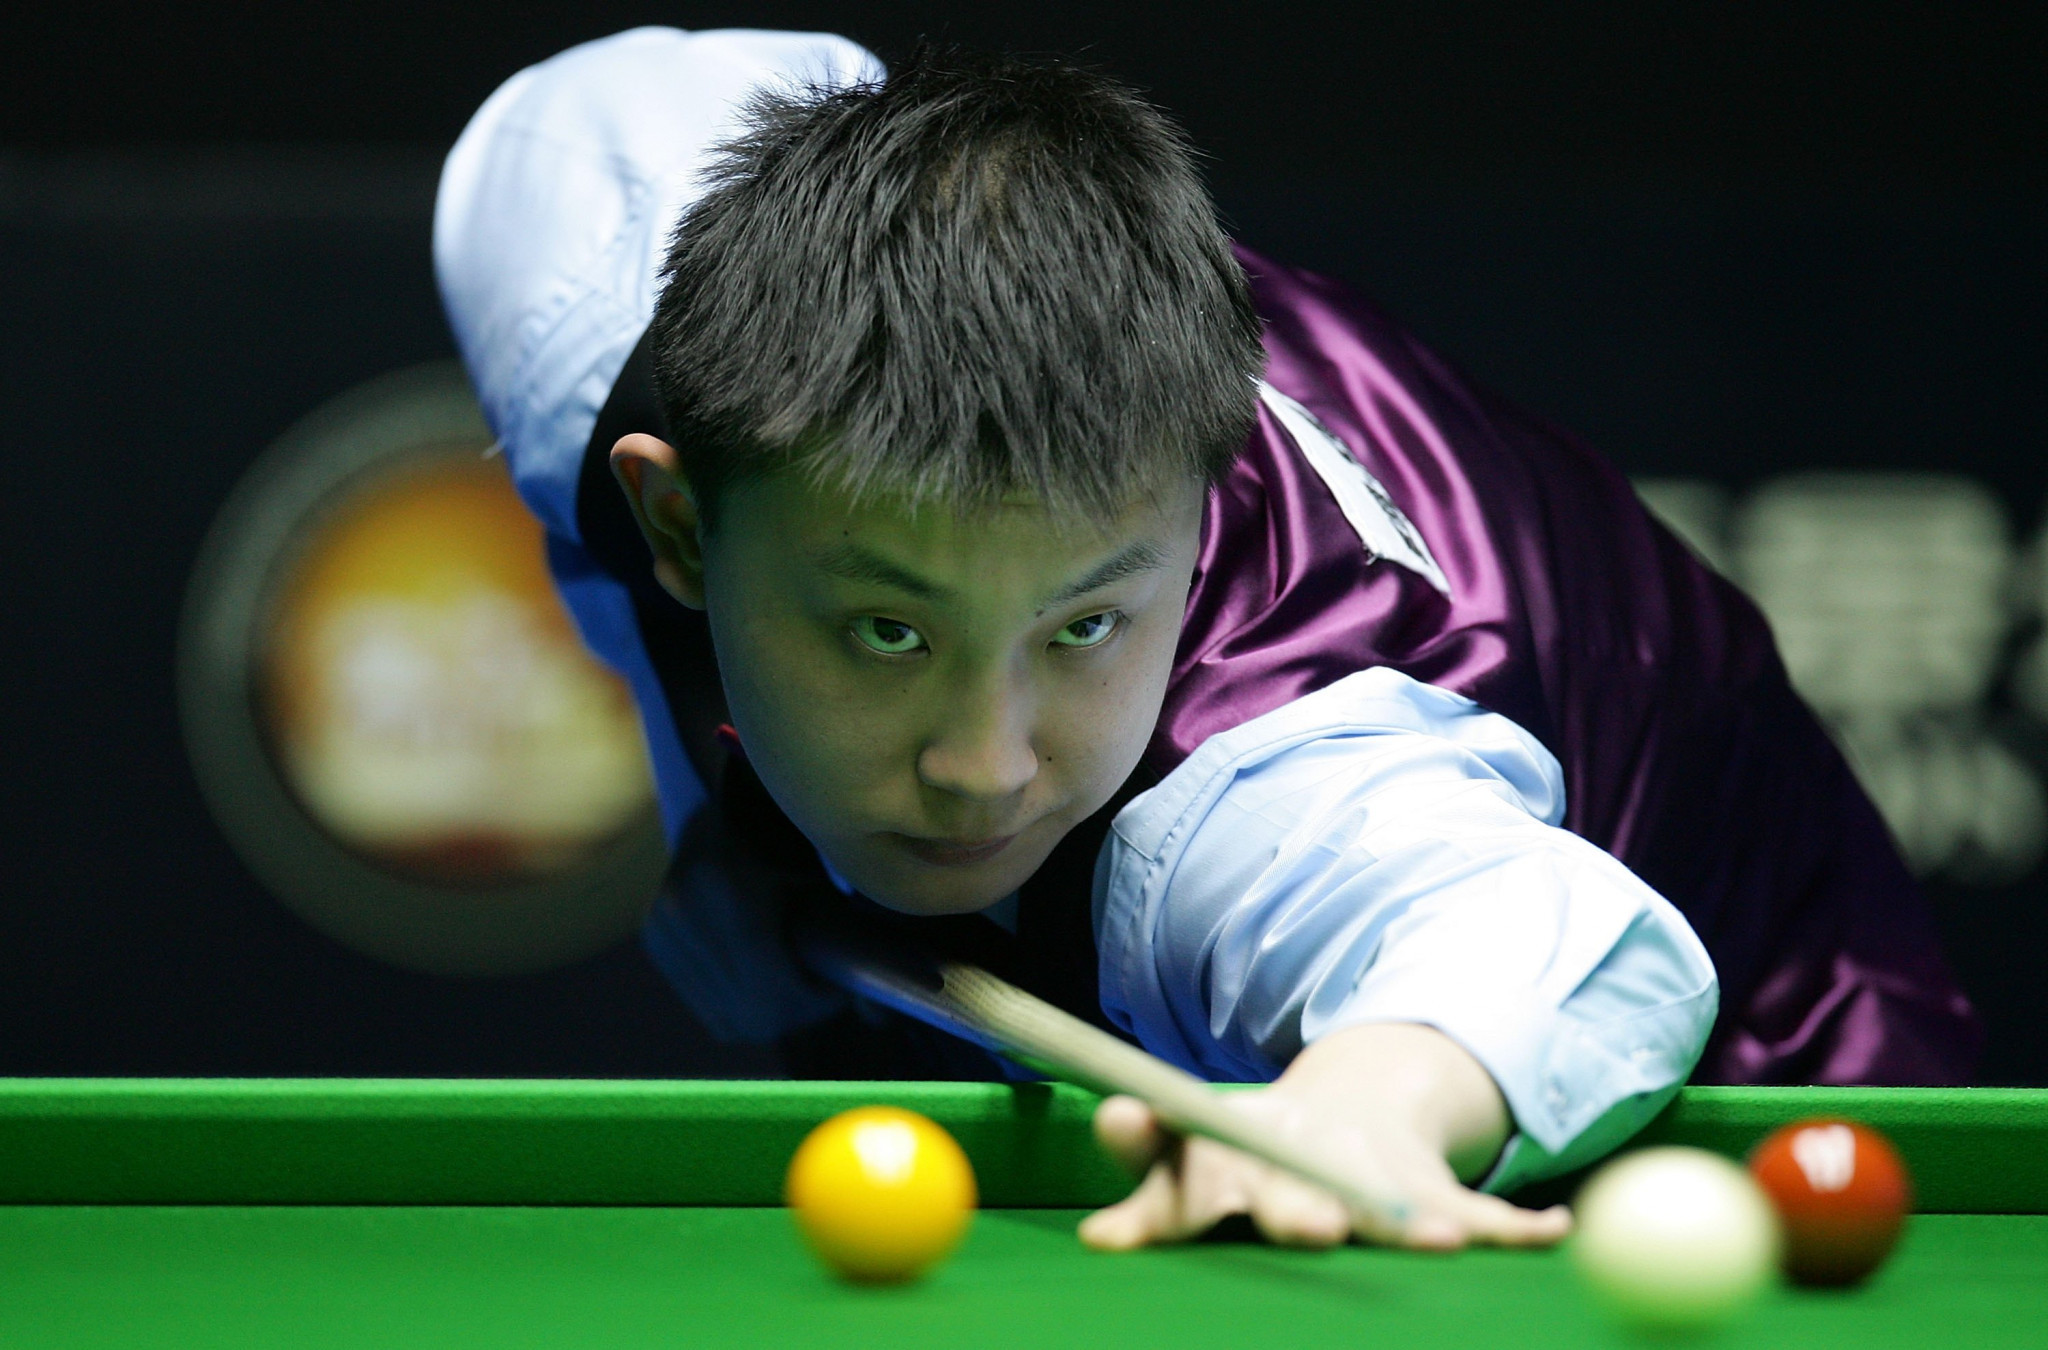 Two Chinese snooker players handed long bans for match-fixing